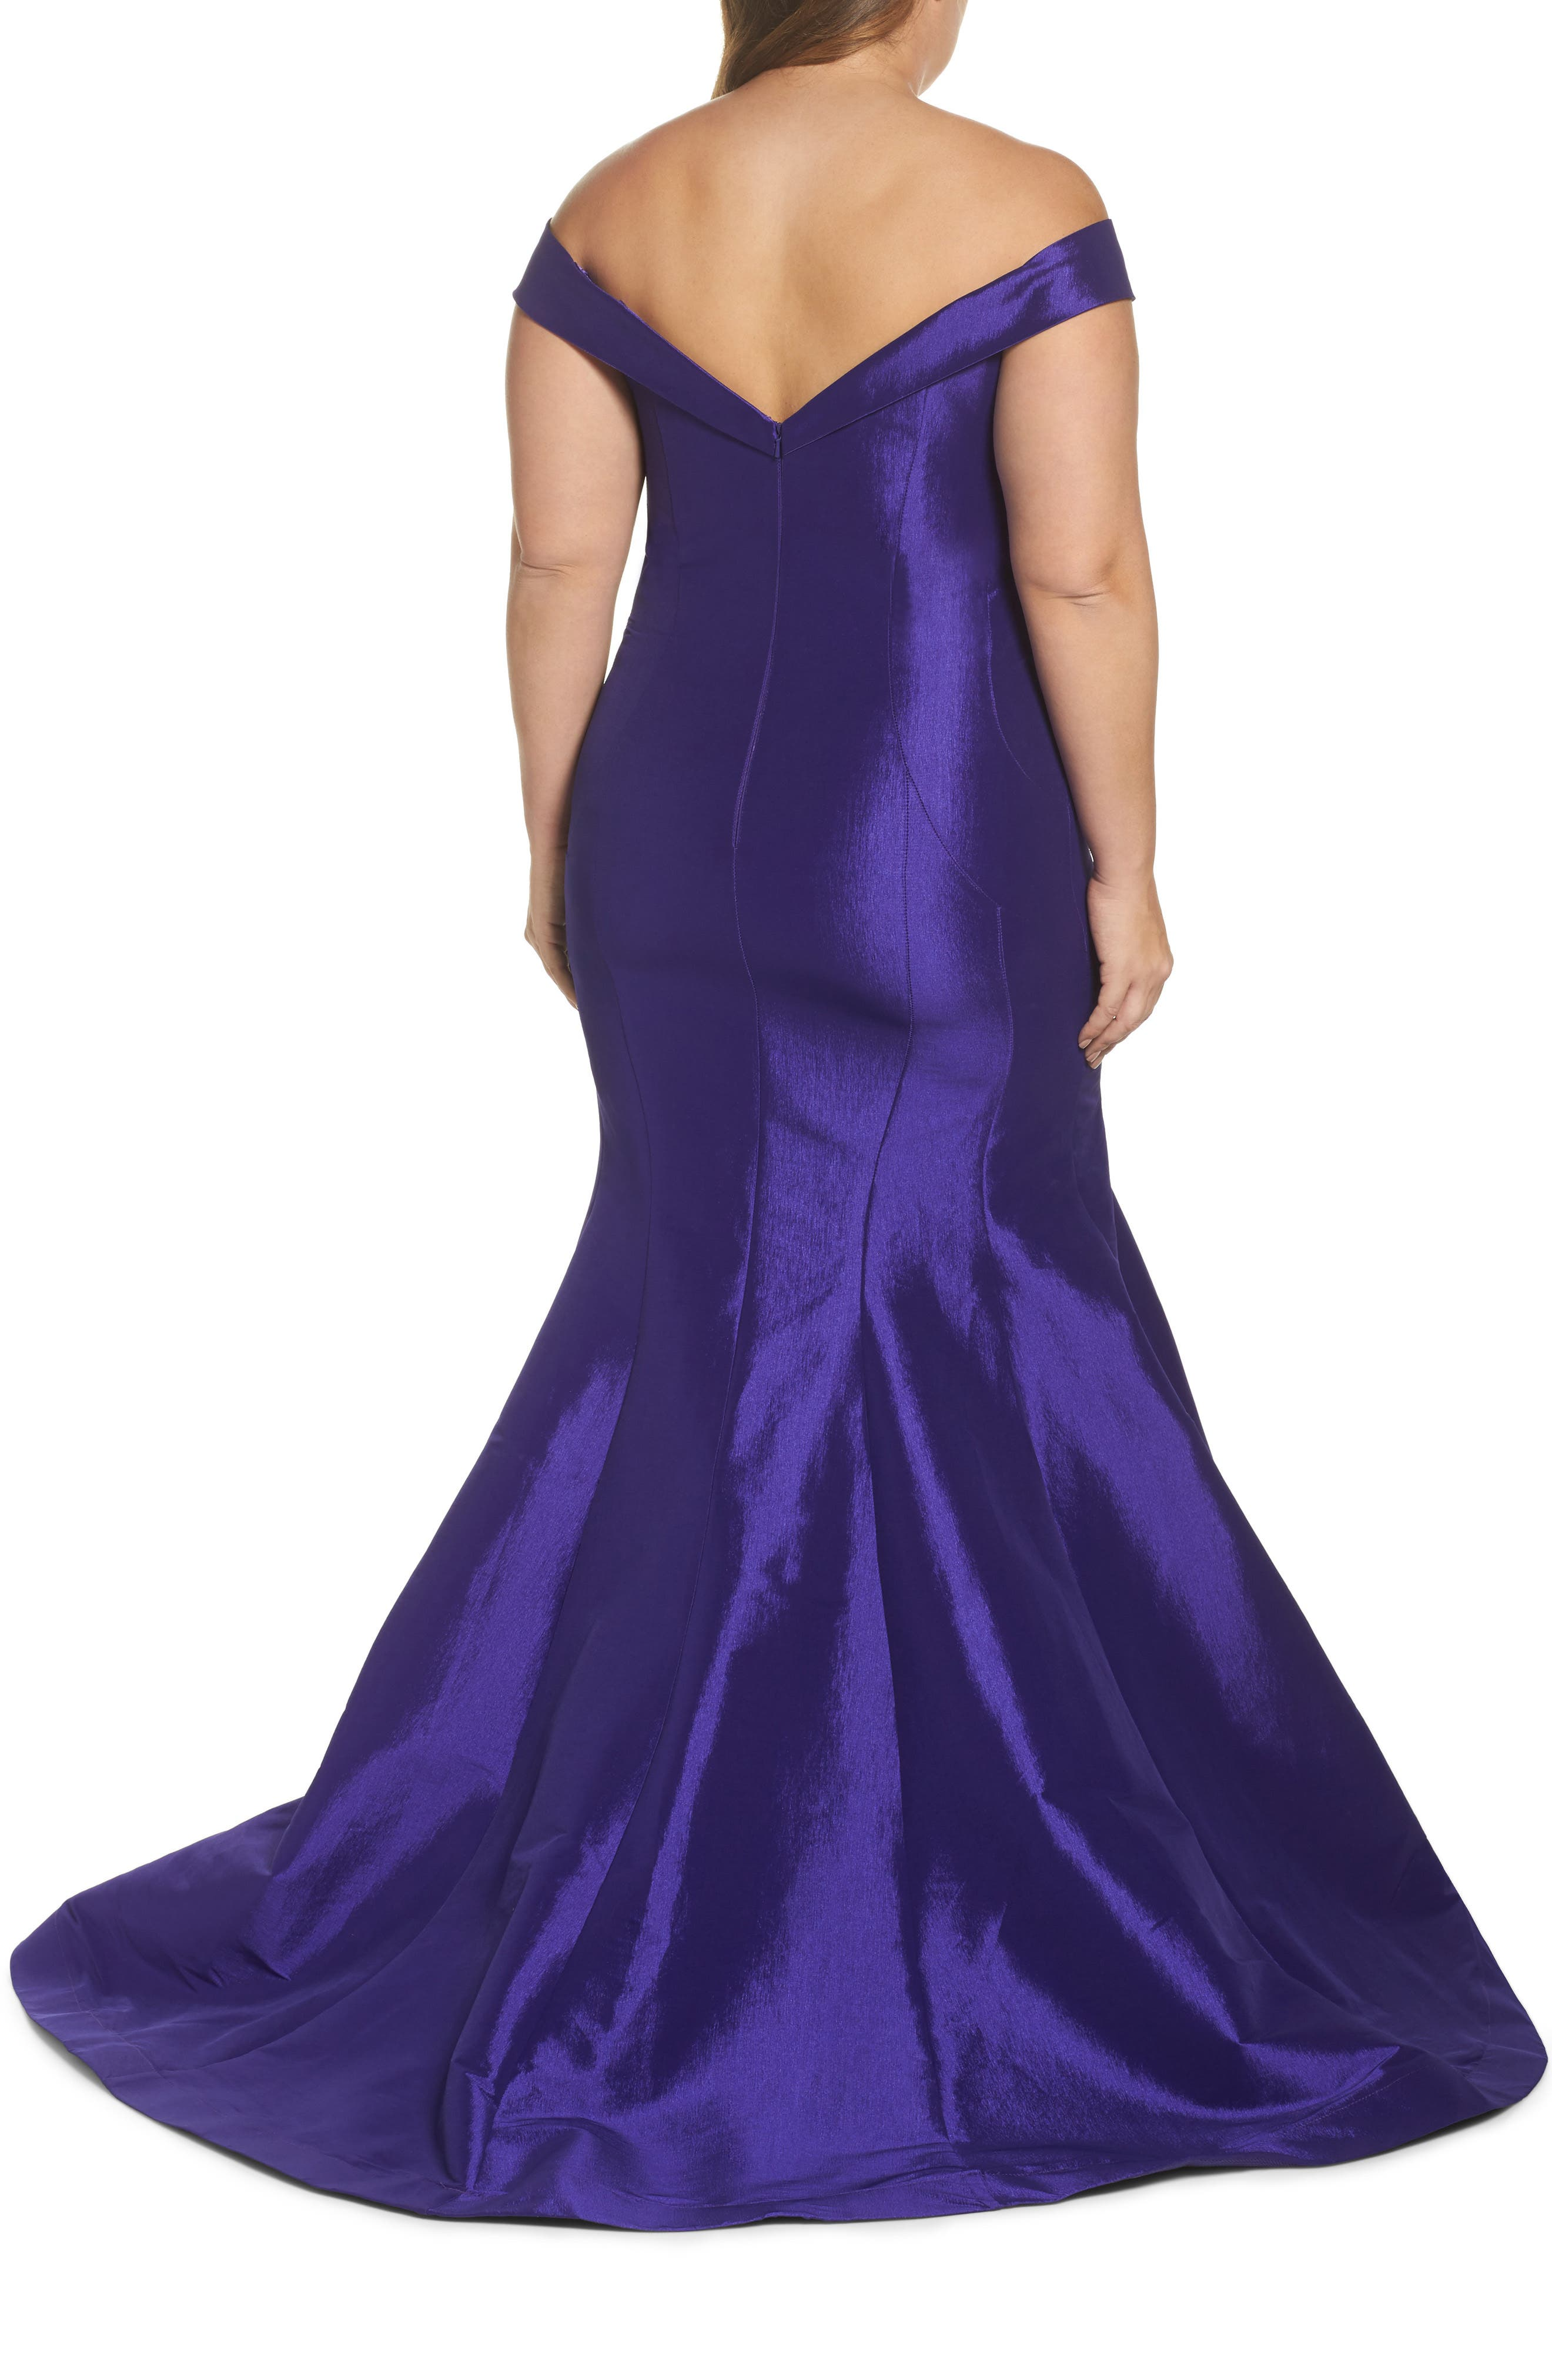 Off the Shoulder Mermaid Gown,                             Alternate thumbnail 2, color,                             567